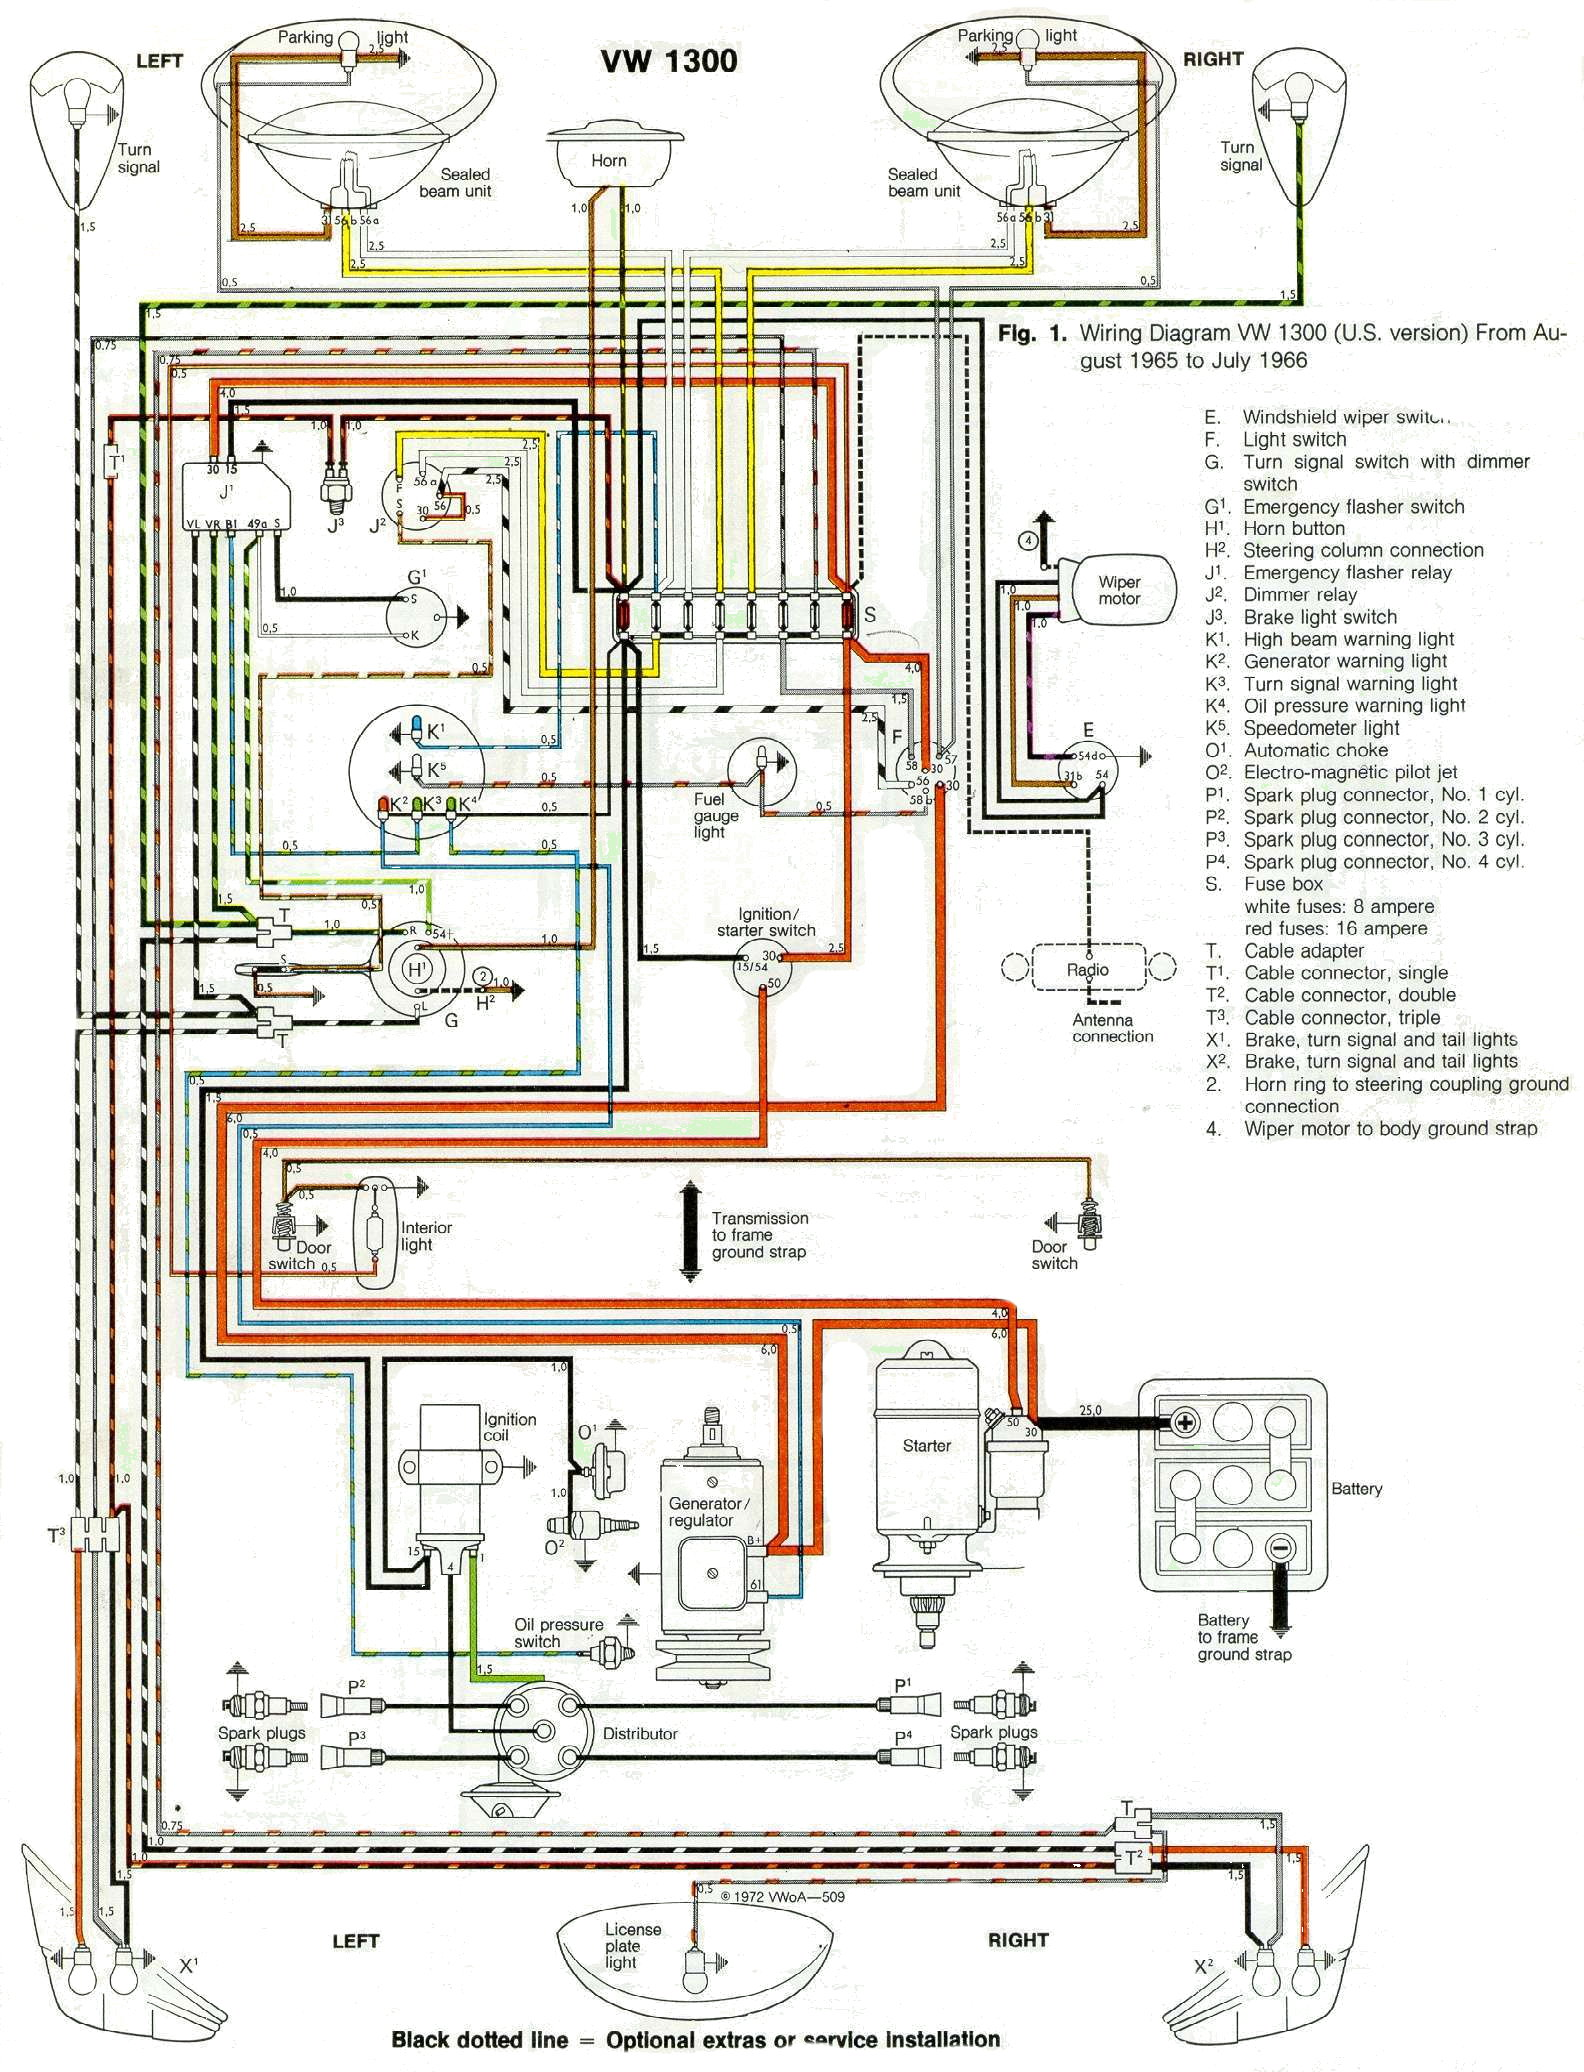 1966 Wiring free wiring diagrams \u2022 205 ufc co 1999 vw beetle wiring diagram at reclaimingppi.co